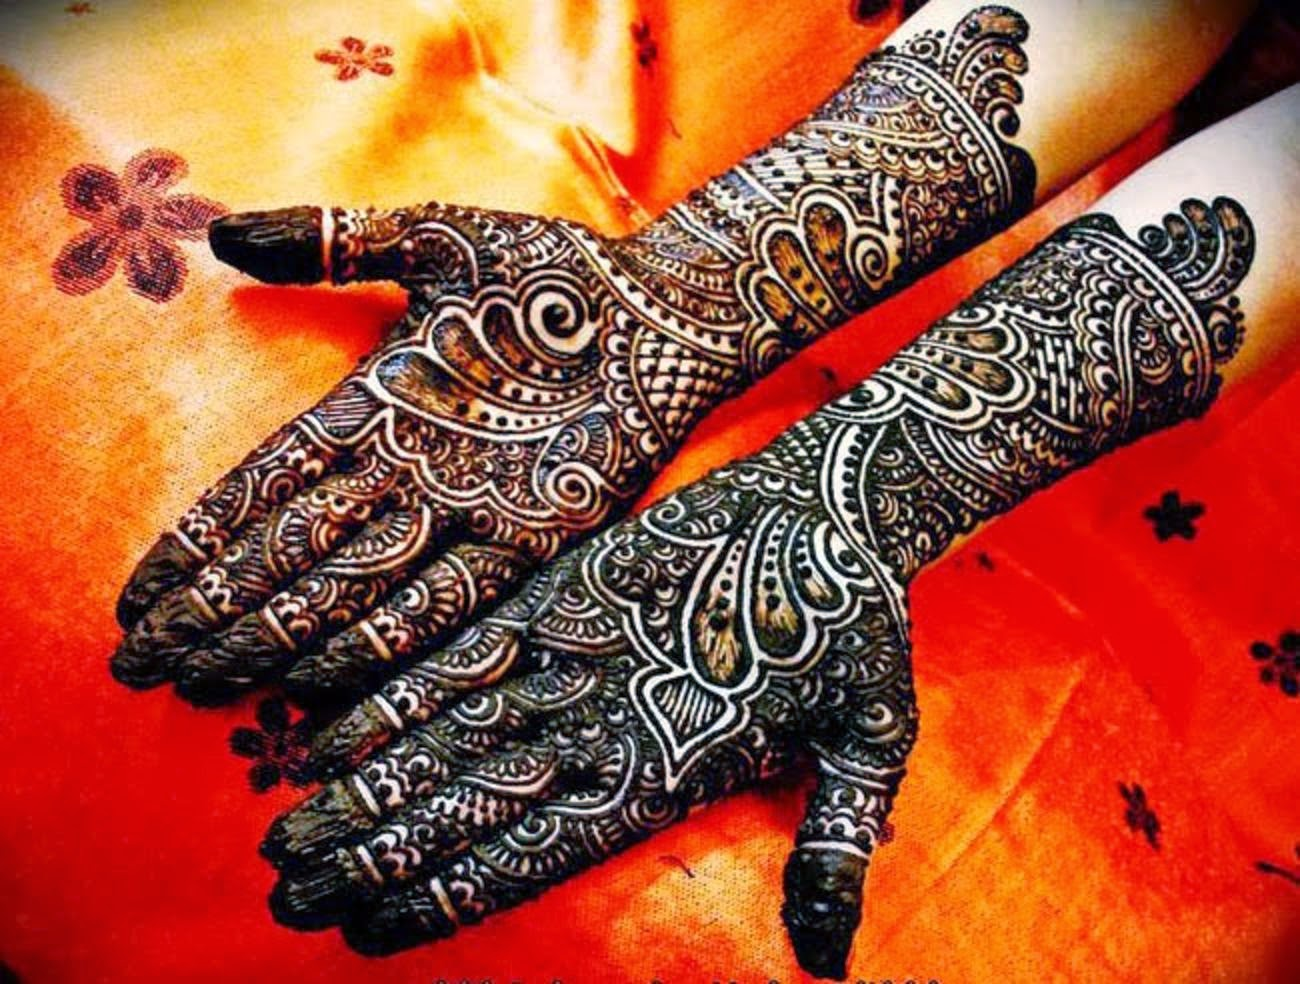 Hand Mehndi Download : All u hd wallpaper free download new latest beautiful